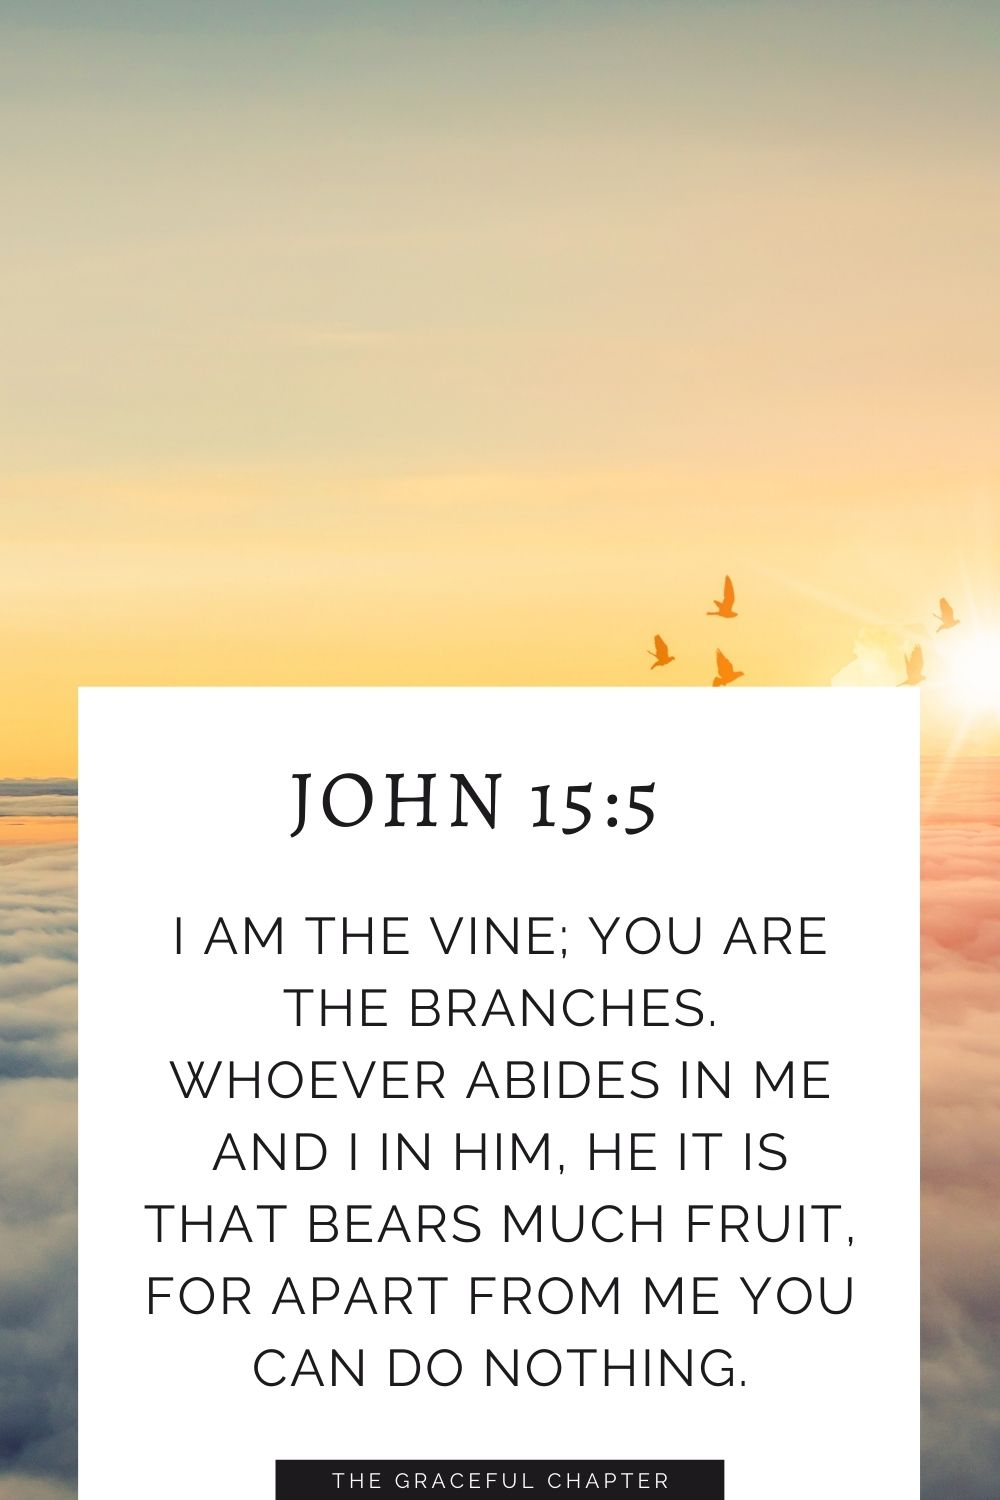 I am the vine; you are the branches. Whoever abides in me and I in him, he it is that bears much fruit, for apart from me you can do nothing. John 15:5